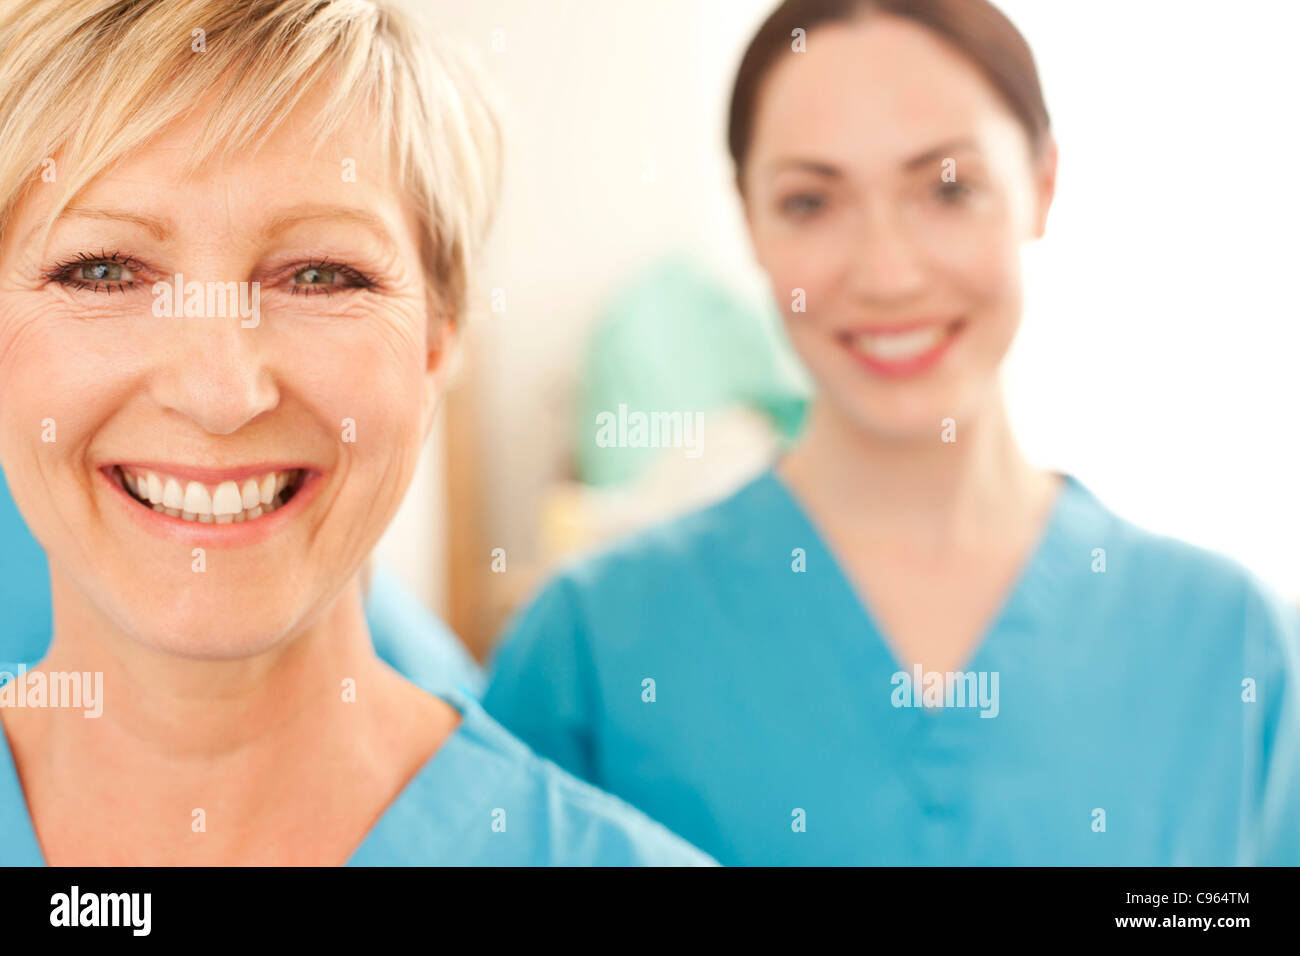 Hospital staff. - Stock Image